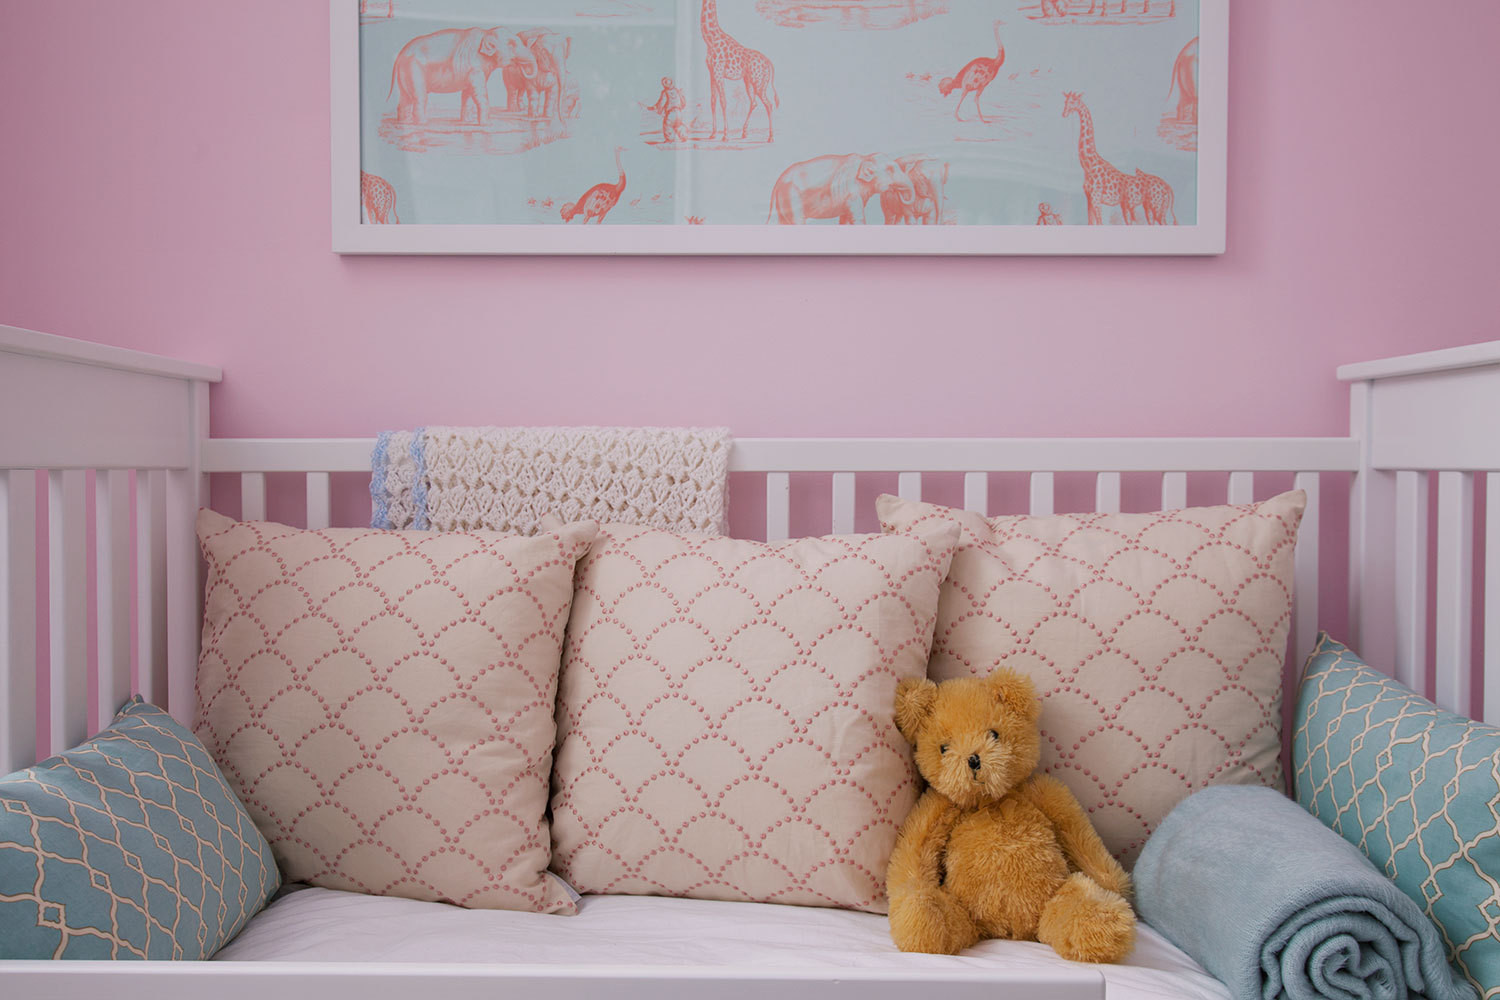 Soft teal lumbar pillows and a orange stuffed bear mimic the hues of the framed Abnormals Anonymous wallpaper.